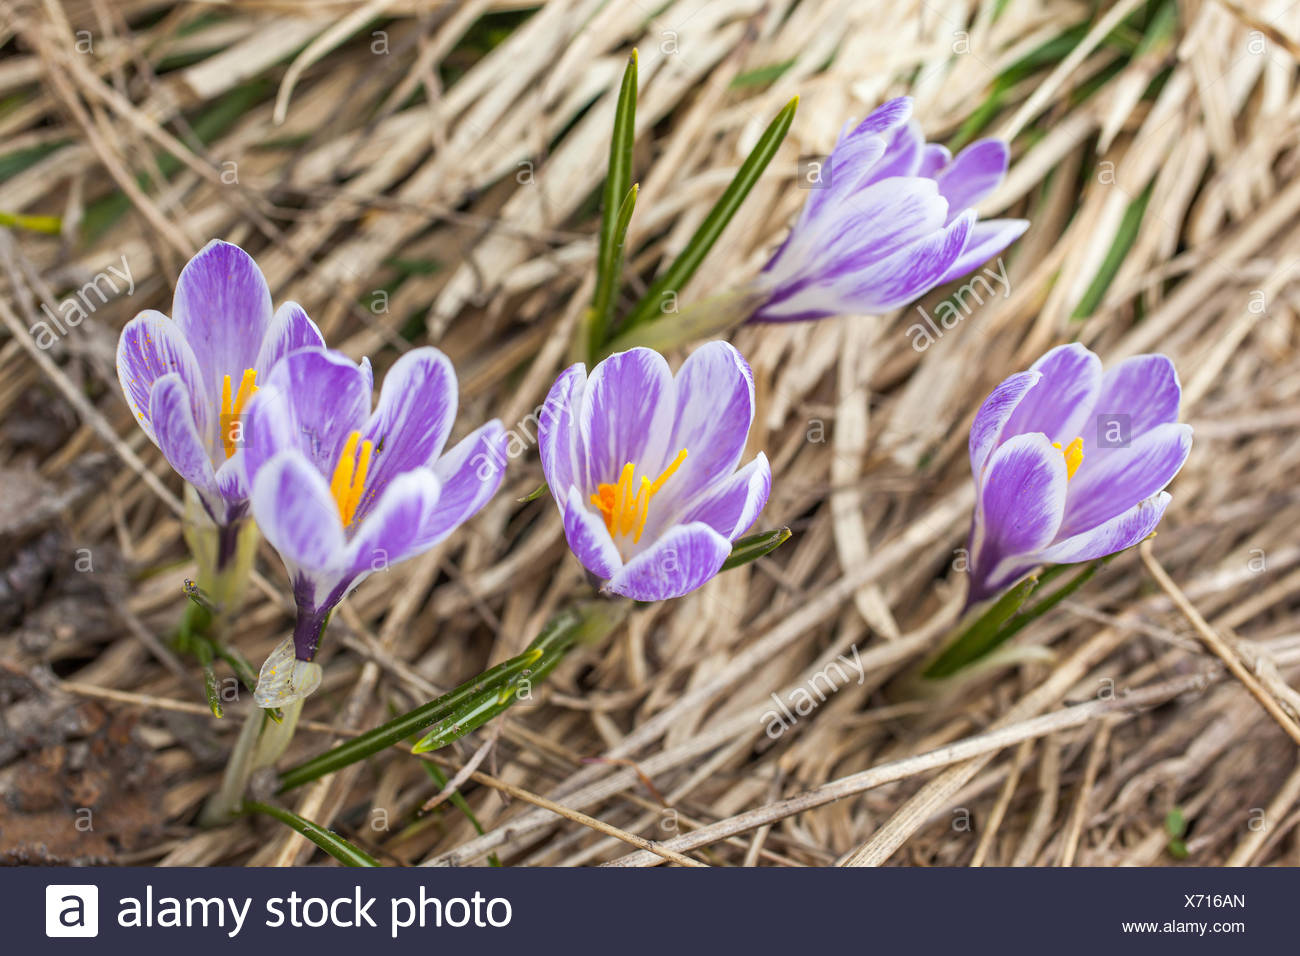 botany, lilac crocus in the Knuttental, Rein in Taufers, Reintal, South Tyrol, Italy, Additional-Rights-Clearance-Info-Not-Available - Stock Image